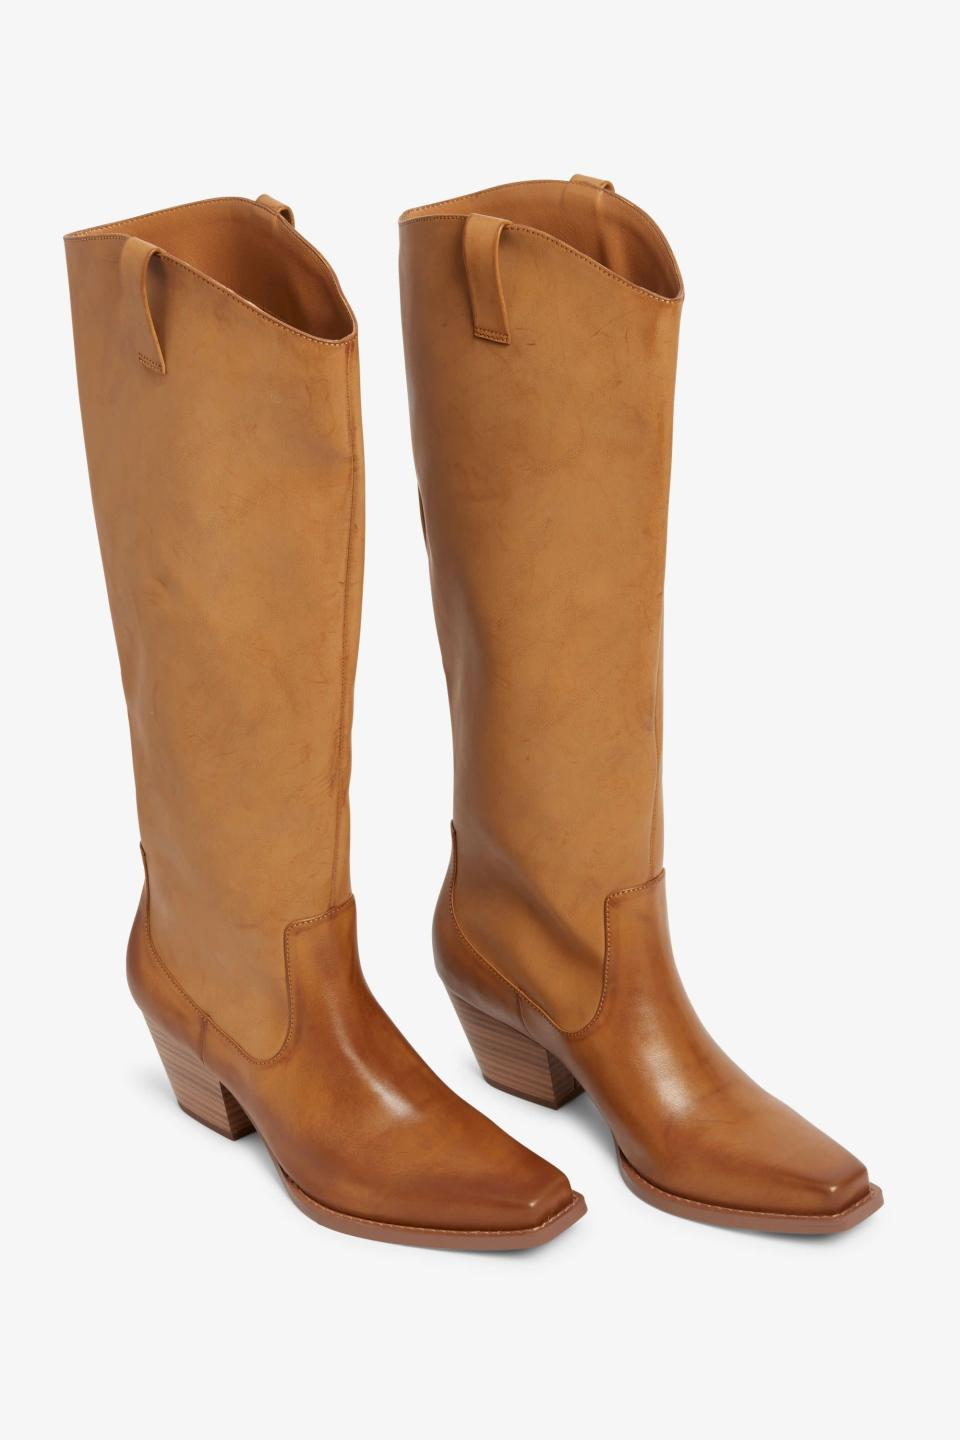 """<br><br><strong>Monki</strong> Knee-High Cowboy Boots, $, available at <a href=""""https://www.monki.com/en_gbp/accessories/shoes/boots/product.knee-high-cowboy-boots-beige.0877481005.html"""" rel=""""nofollow noopener"""" target=""""_blank"""" data-ylk=""""slk:Monki"""" class=""""link rapid-noclick-resp"""">Monki</a>"""